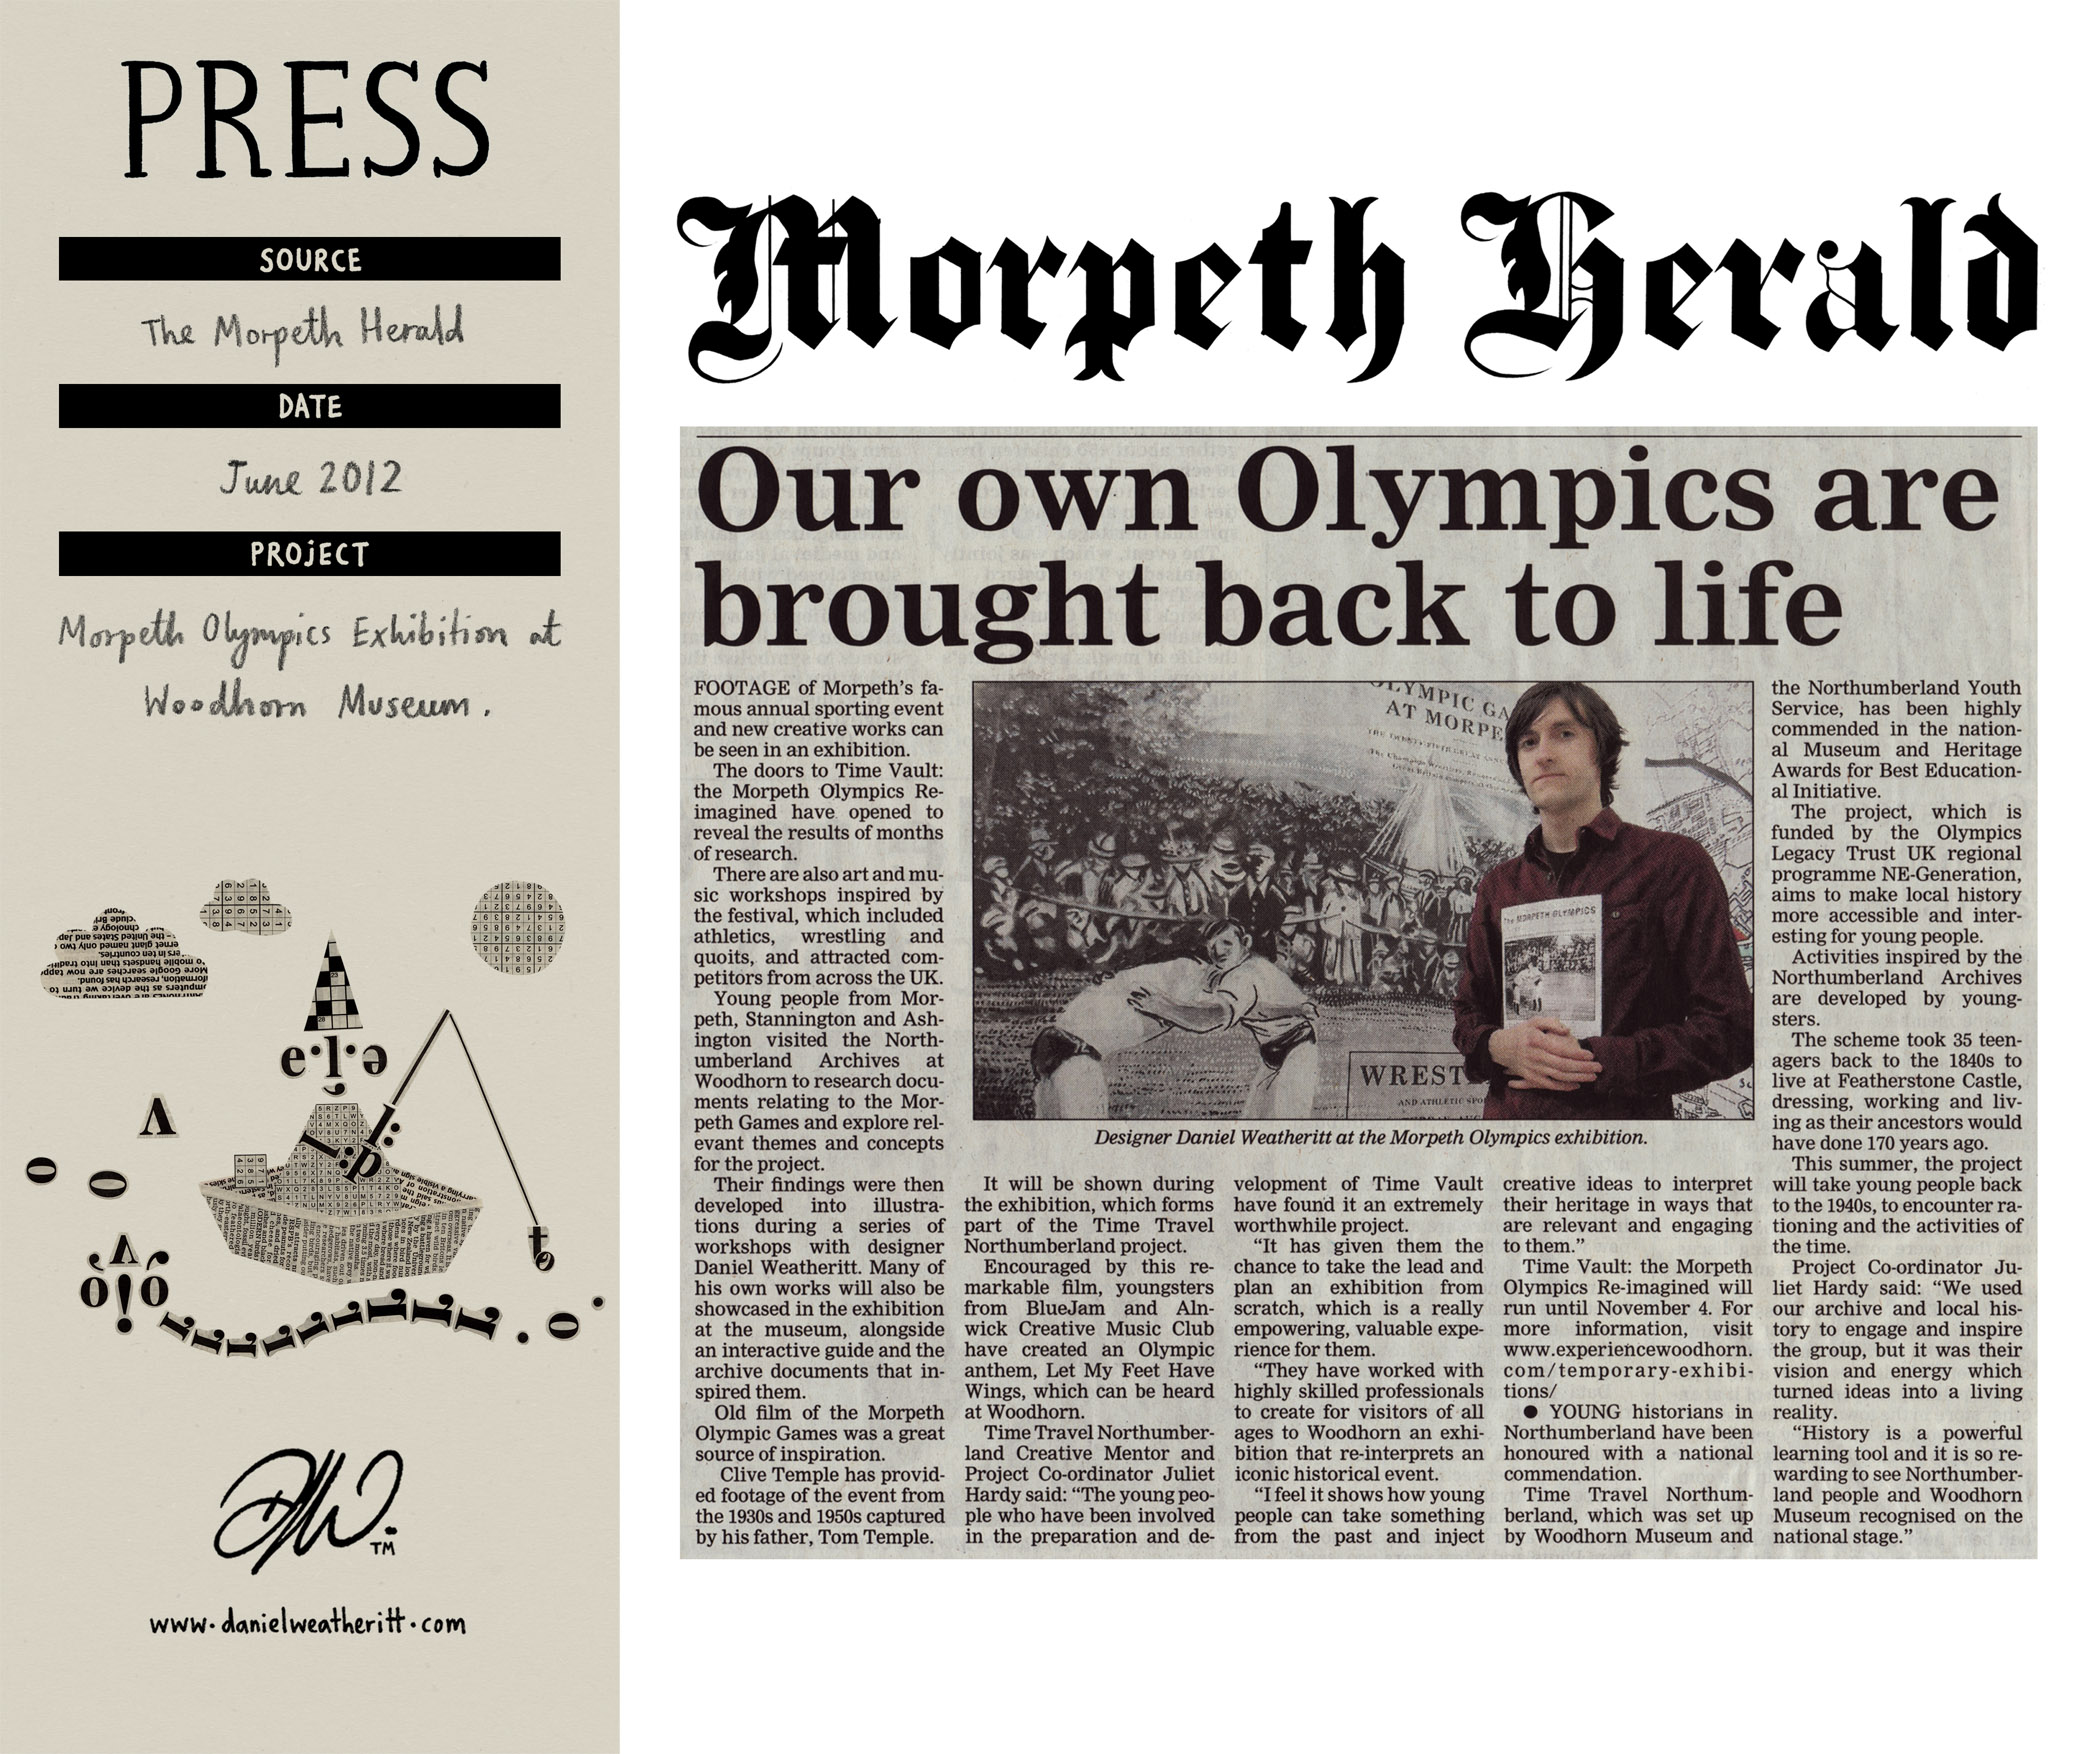 <b>Morpeth Olympics 1933 Exhibition</b> - Morpeth Herald Article